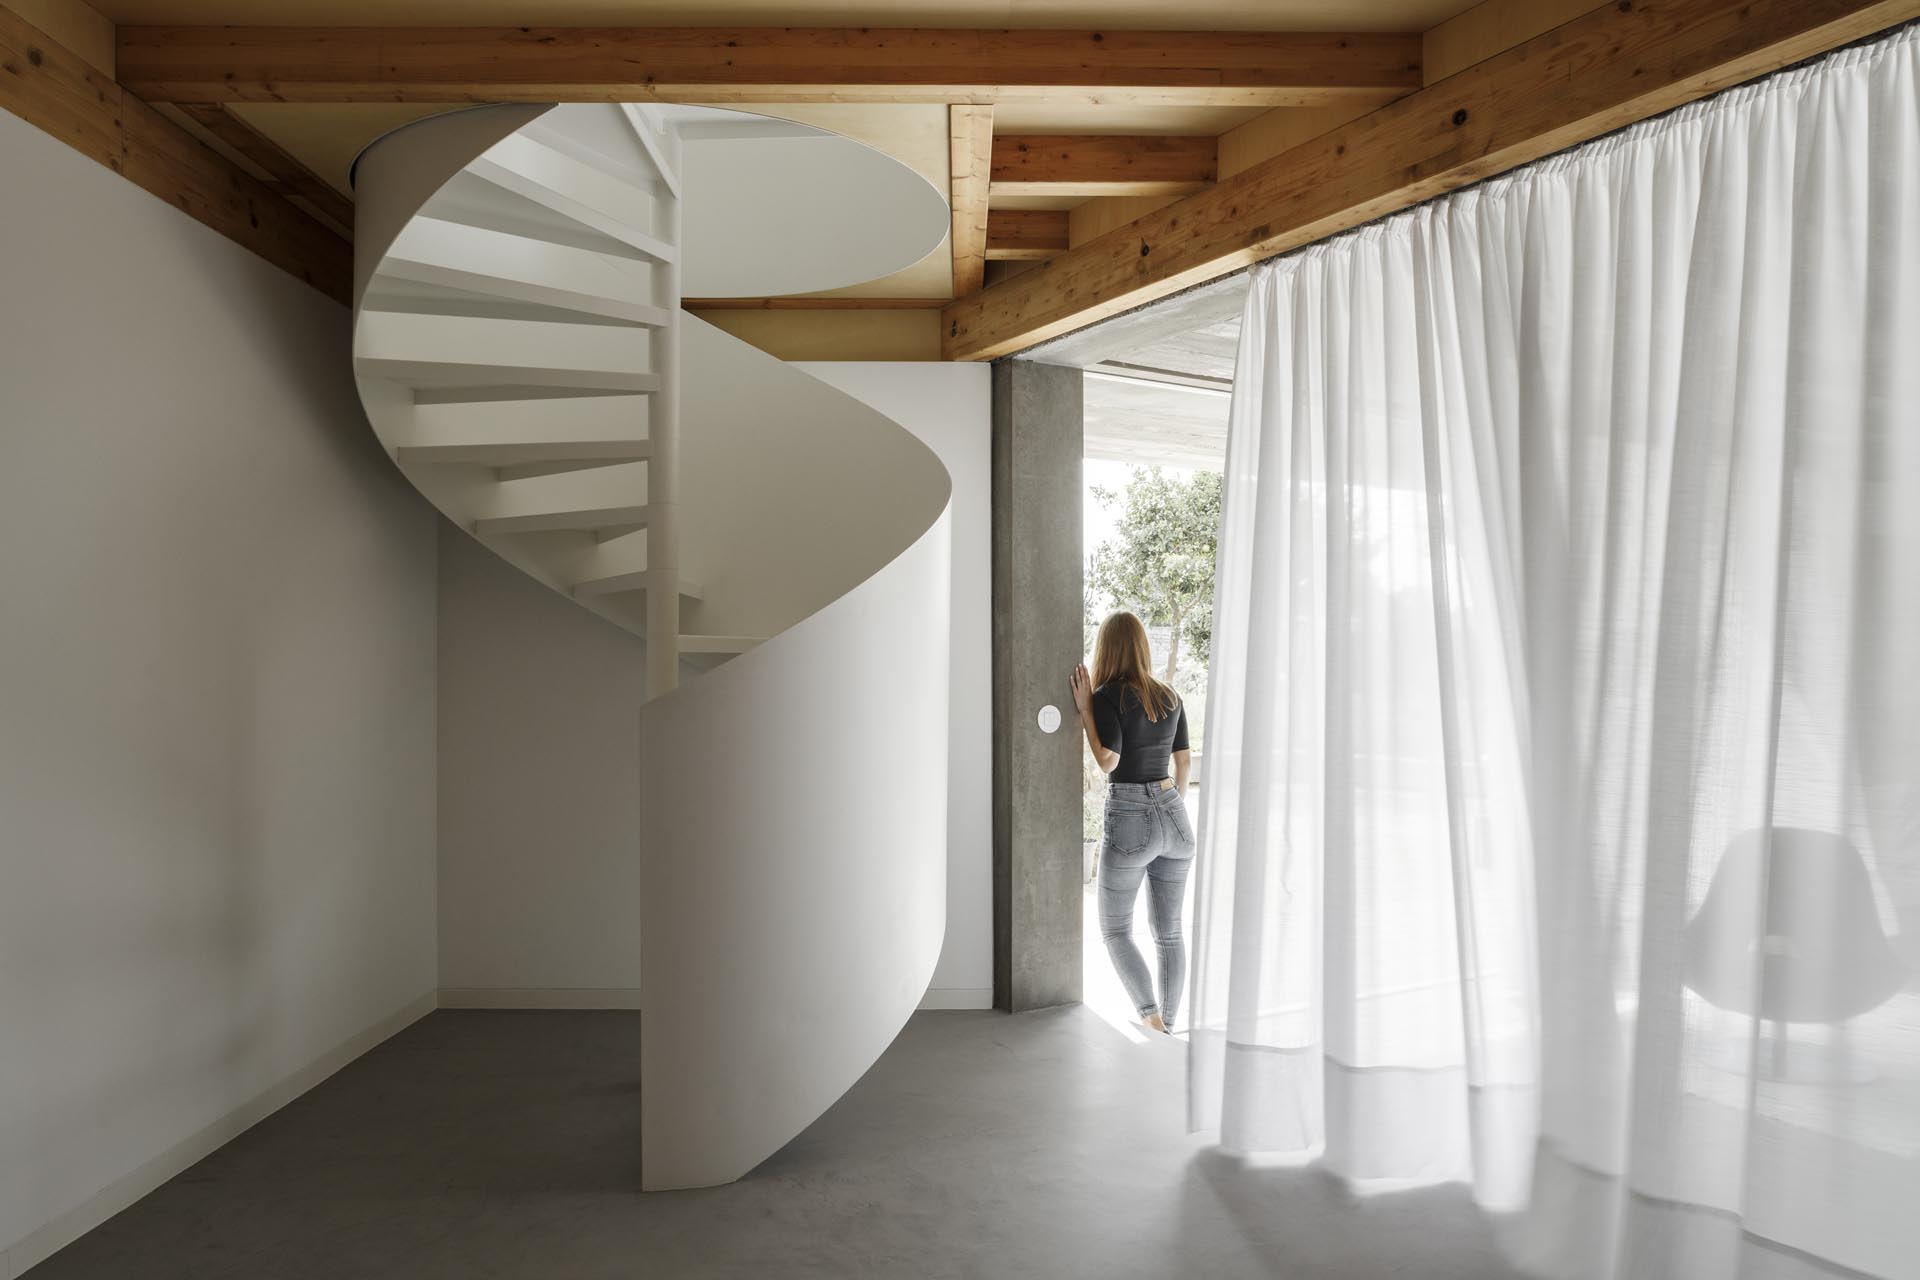 A modern home with a white spiral staircase.